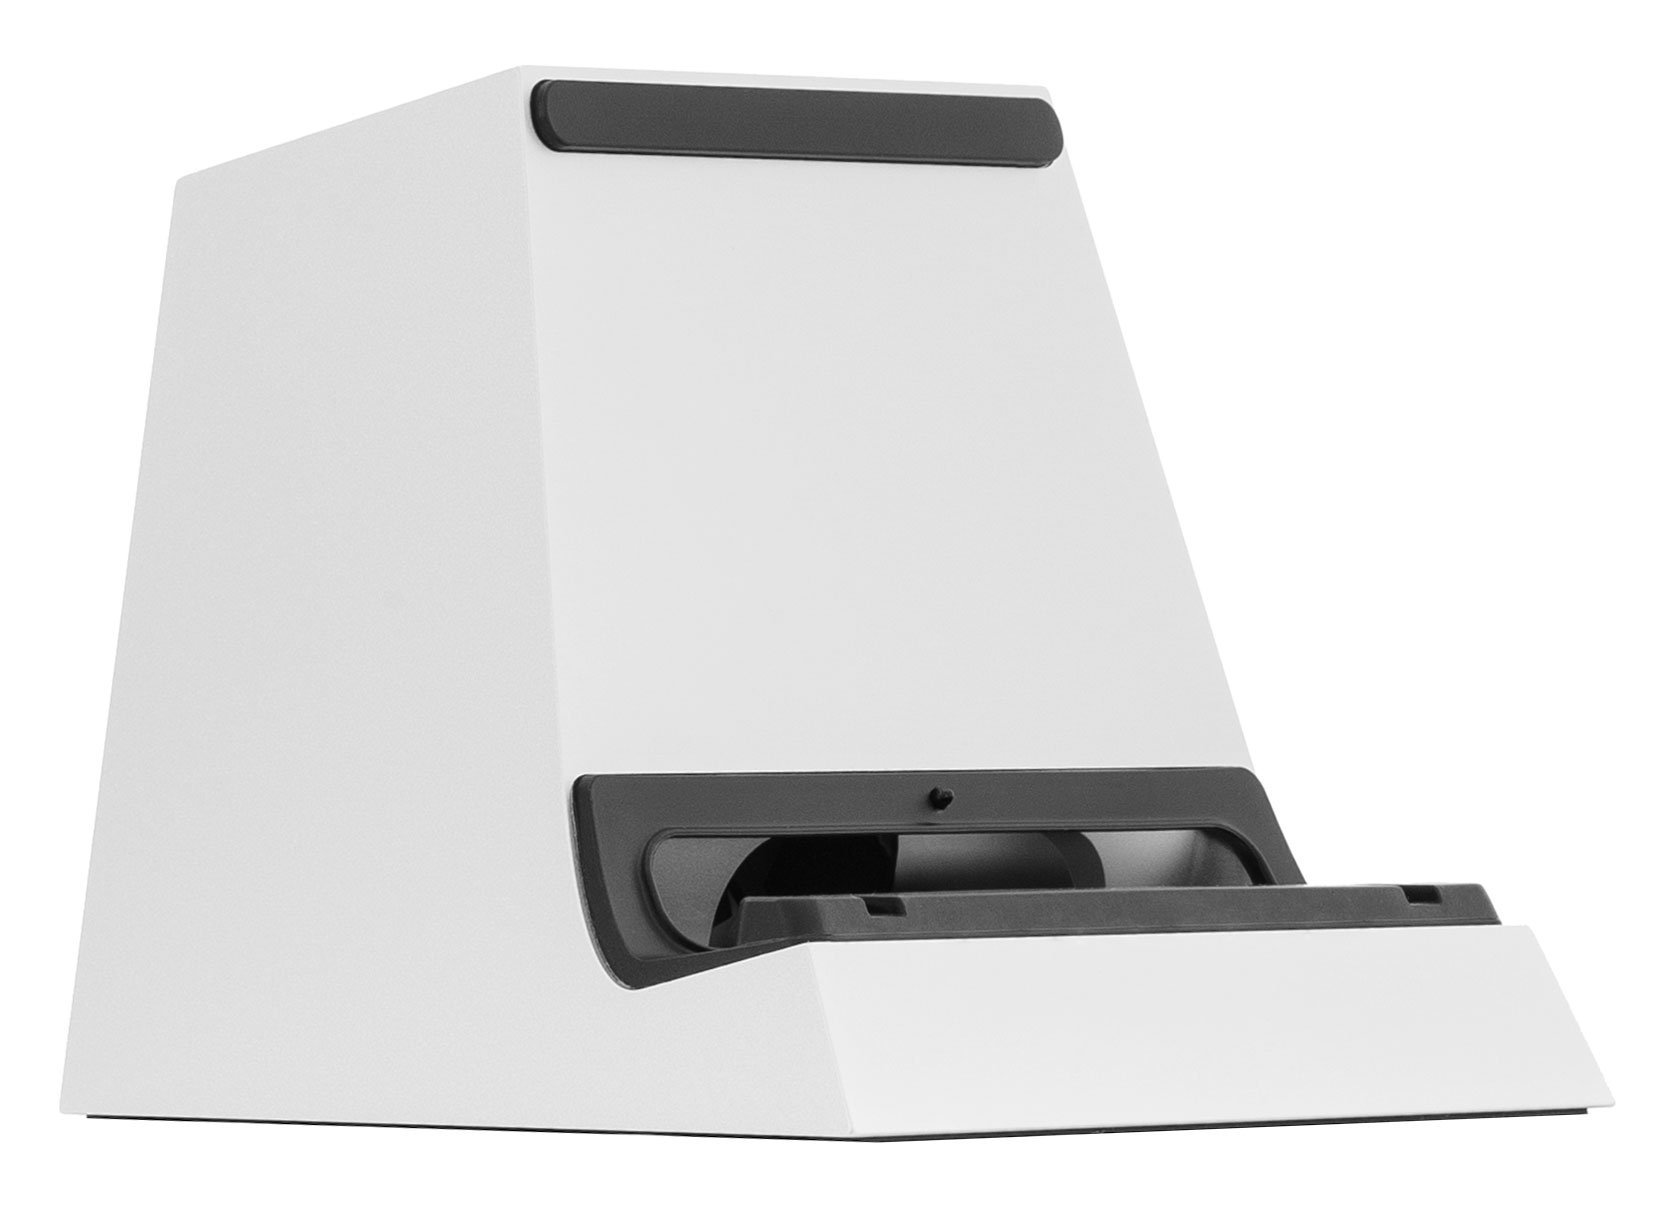 SVALT D2 High-Performance Cooling Dock for Apple Retina MacBook Pro and MacBook Air laptops by SVALT (Image #7)